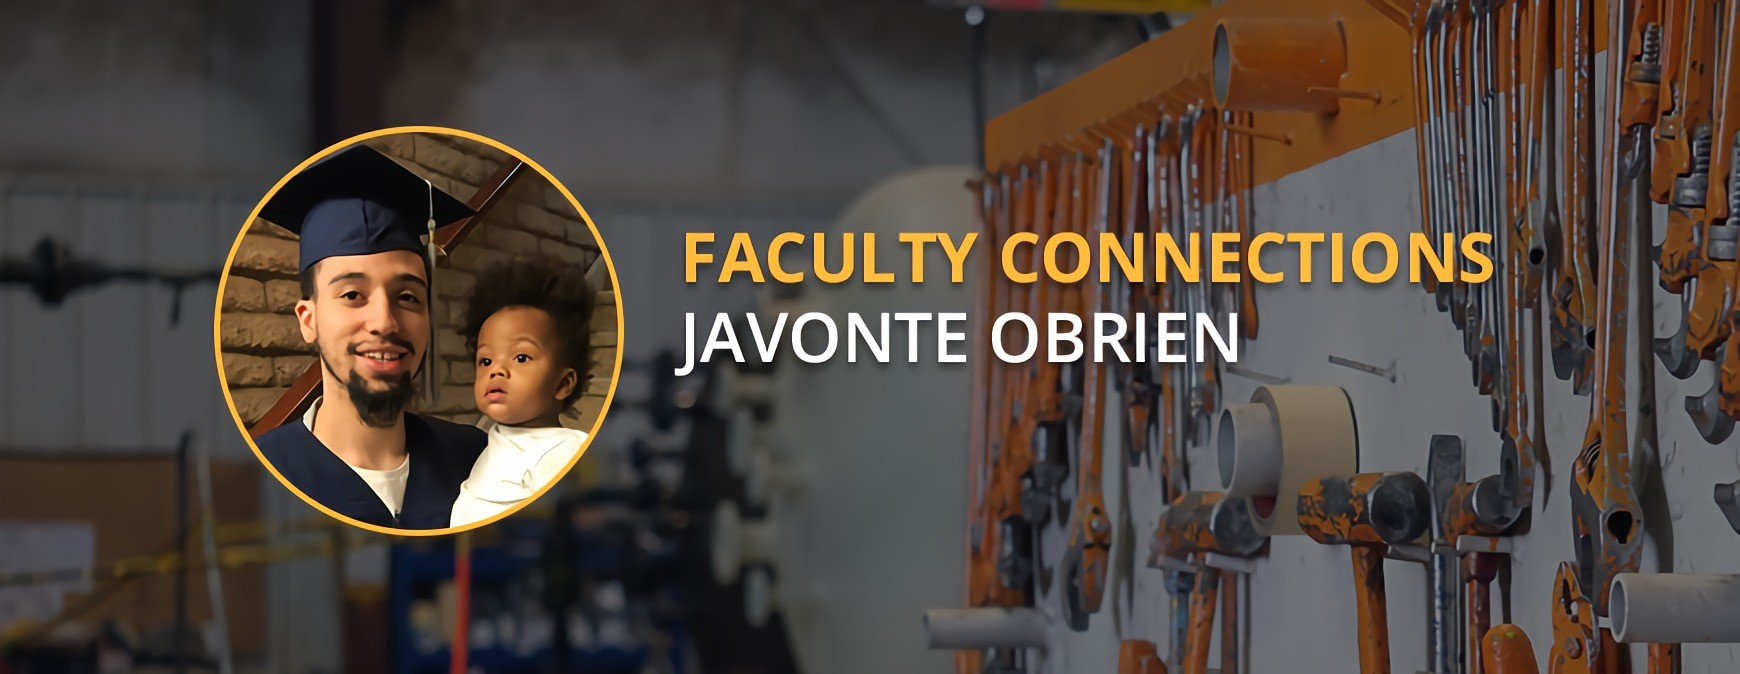 Javonte Obrien graduate connection